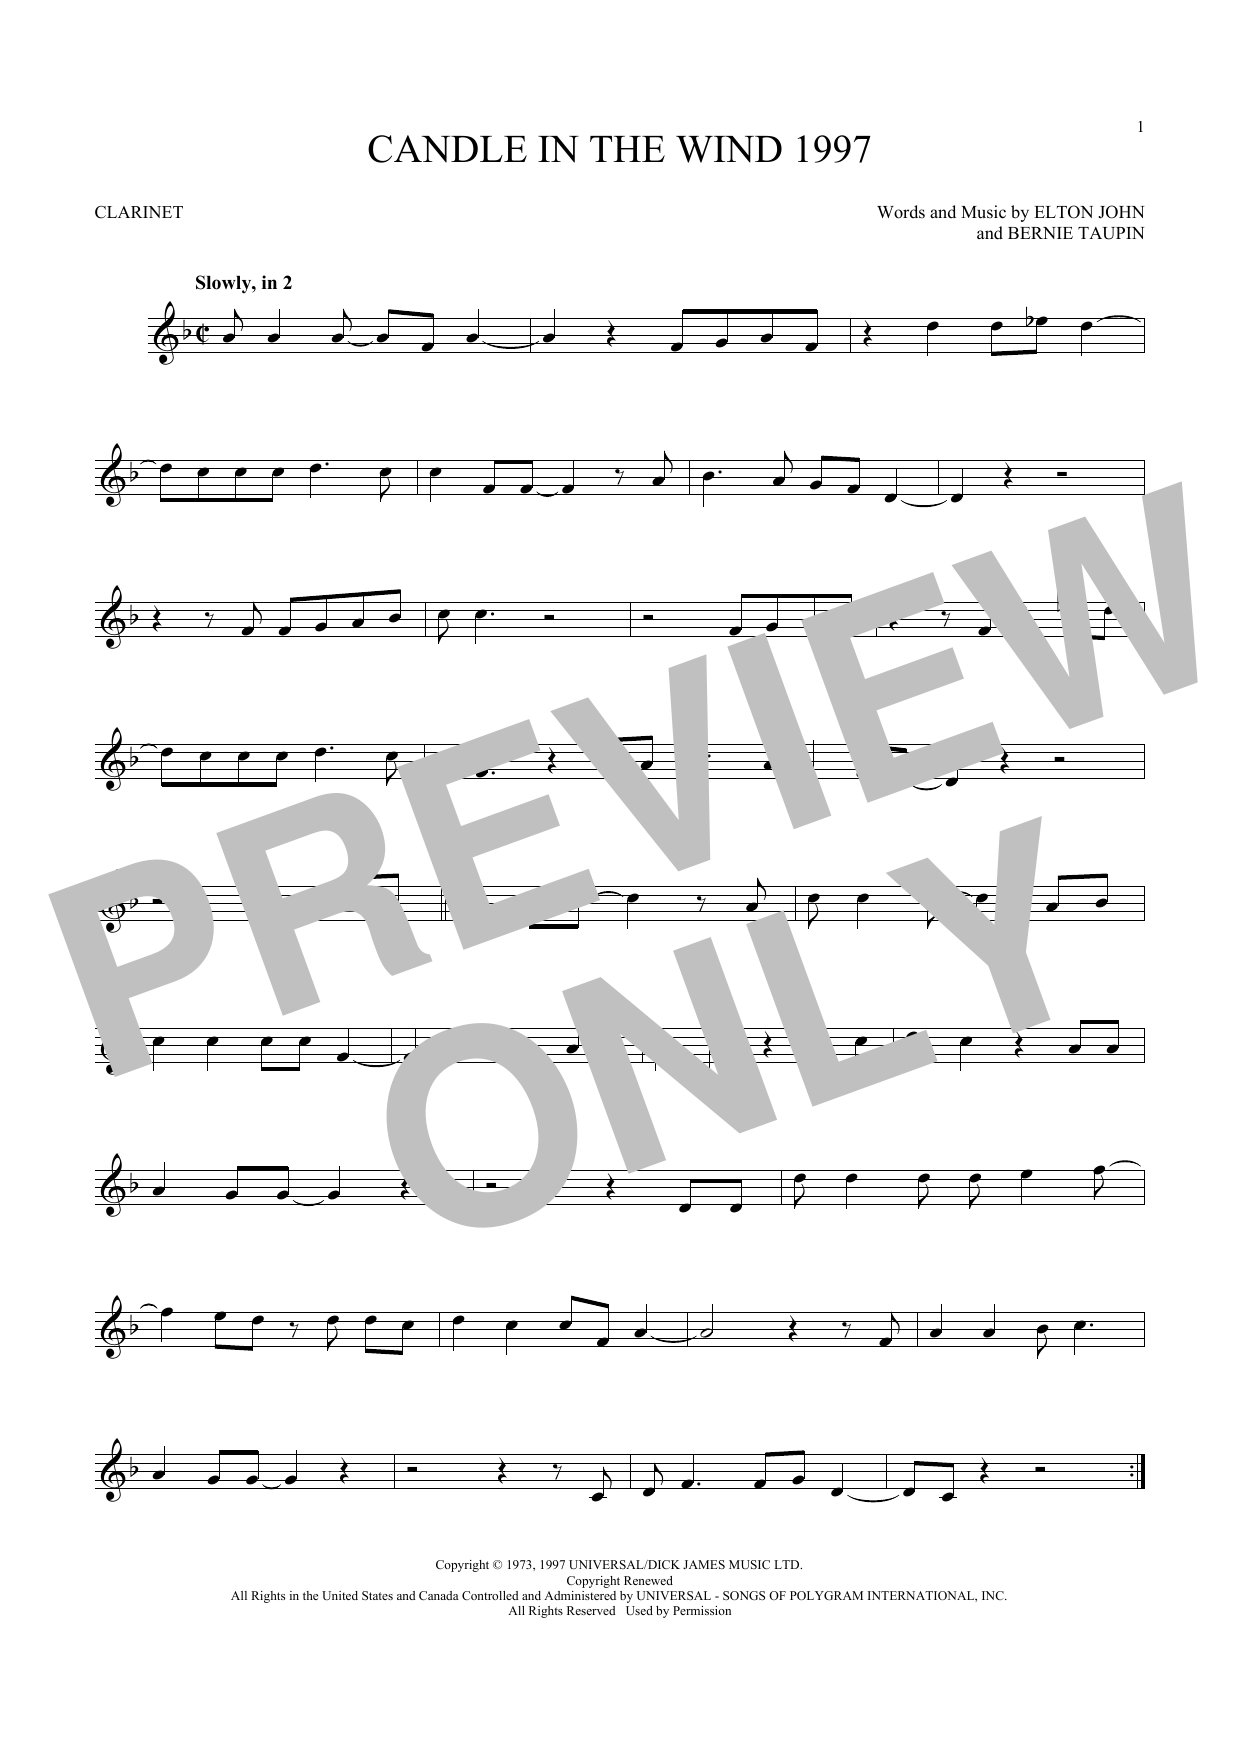 Elton John - Candle In The Wind 1997 sheet music